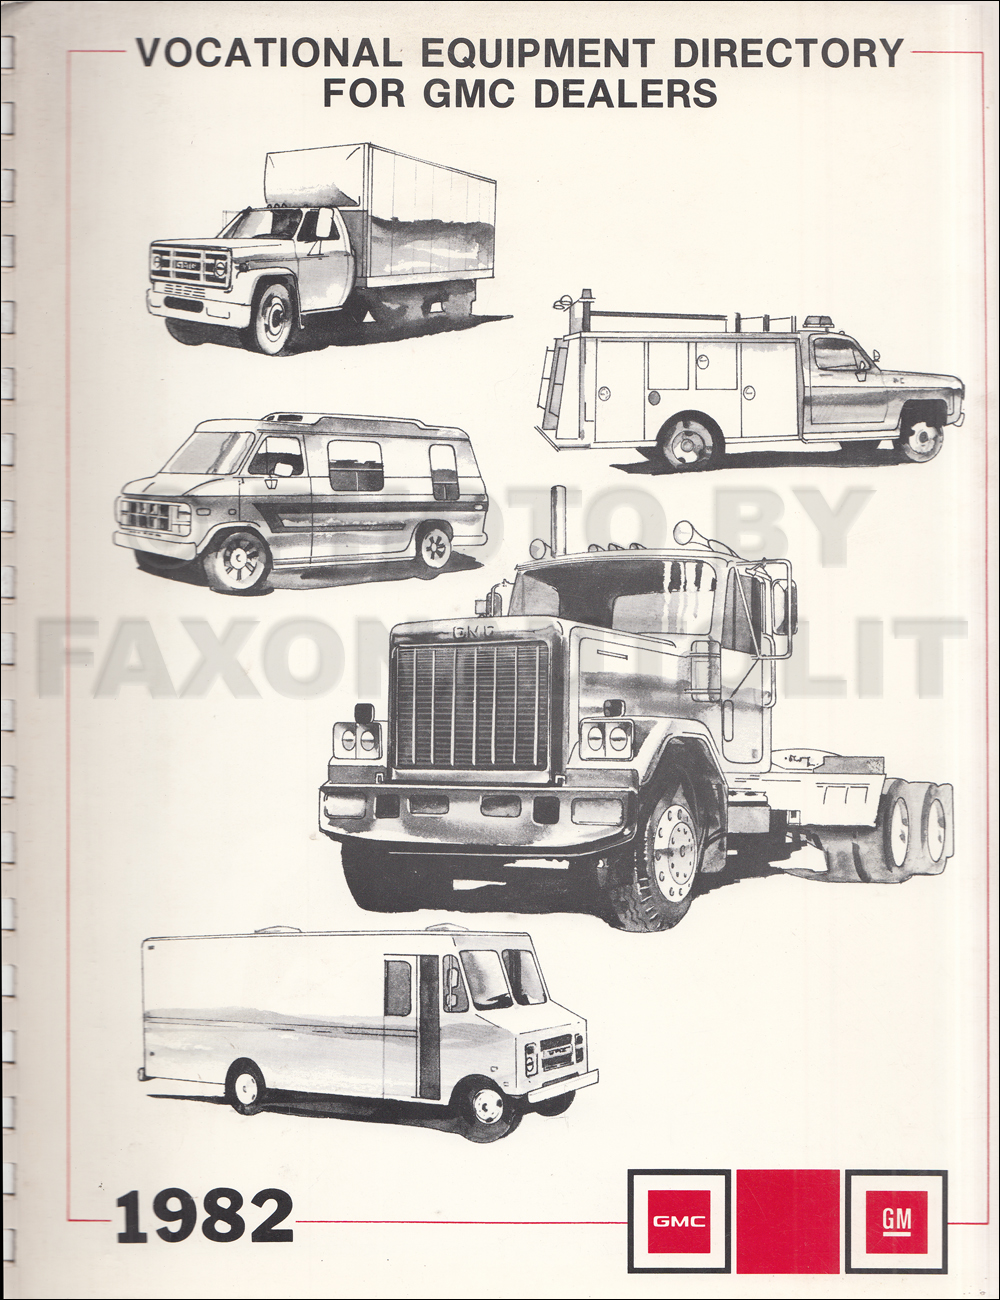 1982 GMC Truck Vocational Equipment Dealer Album